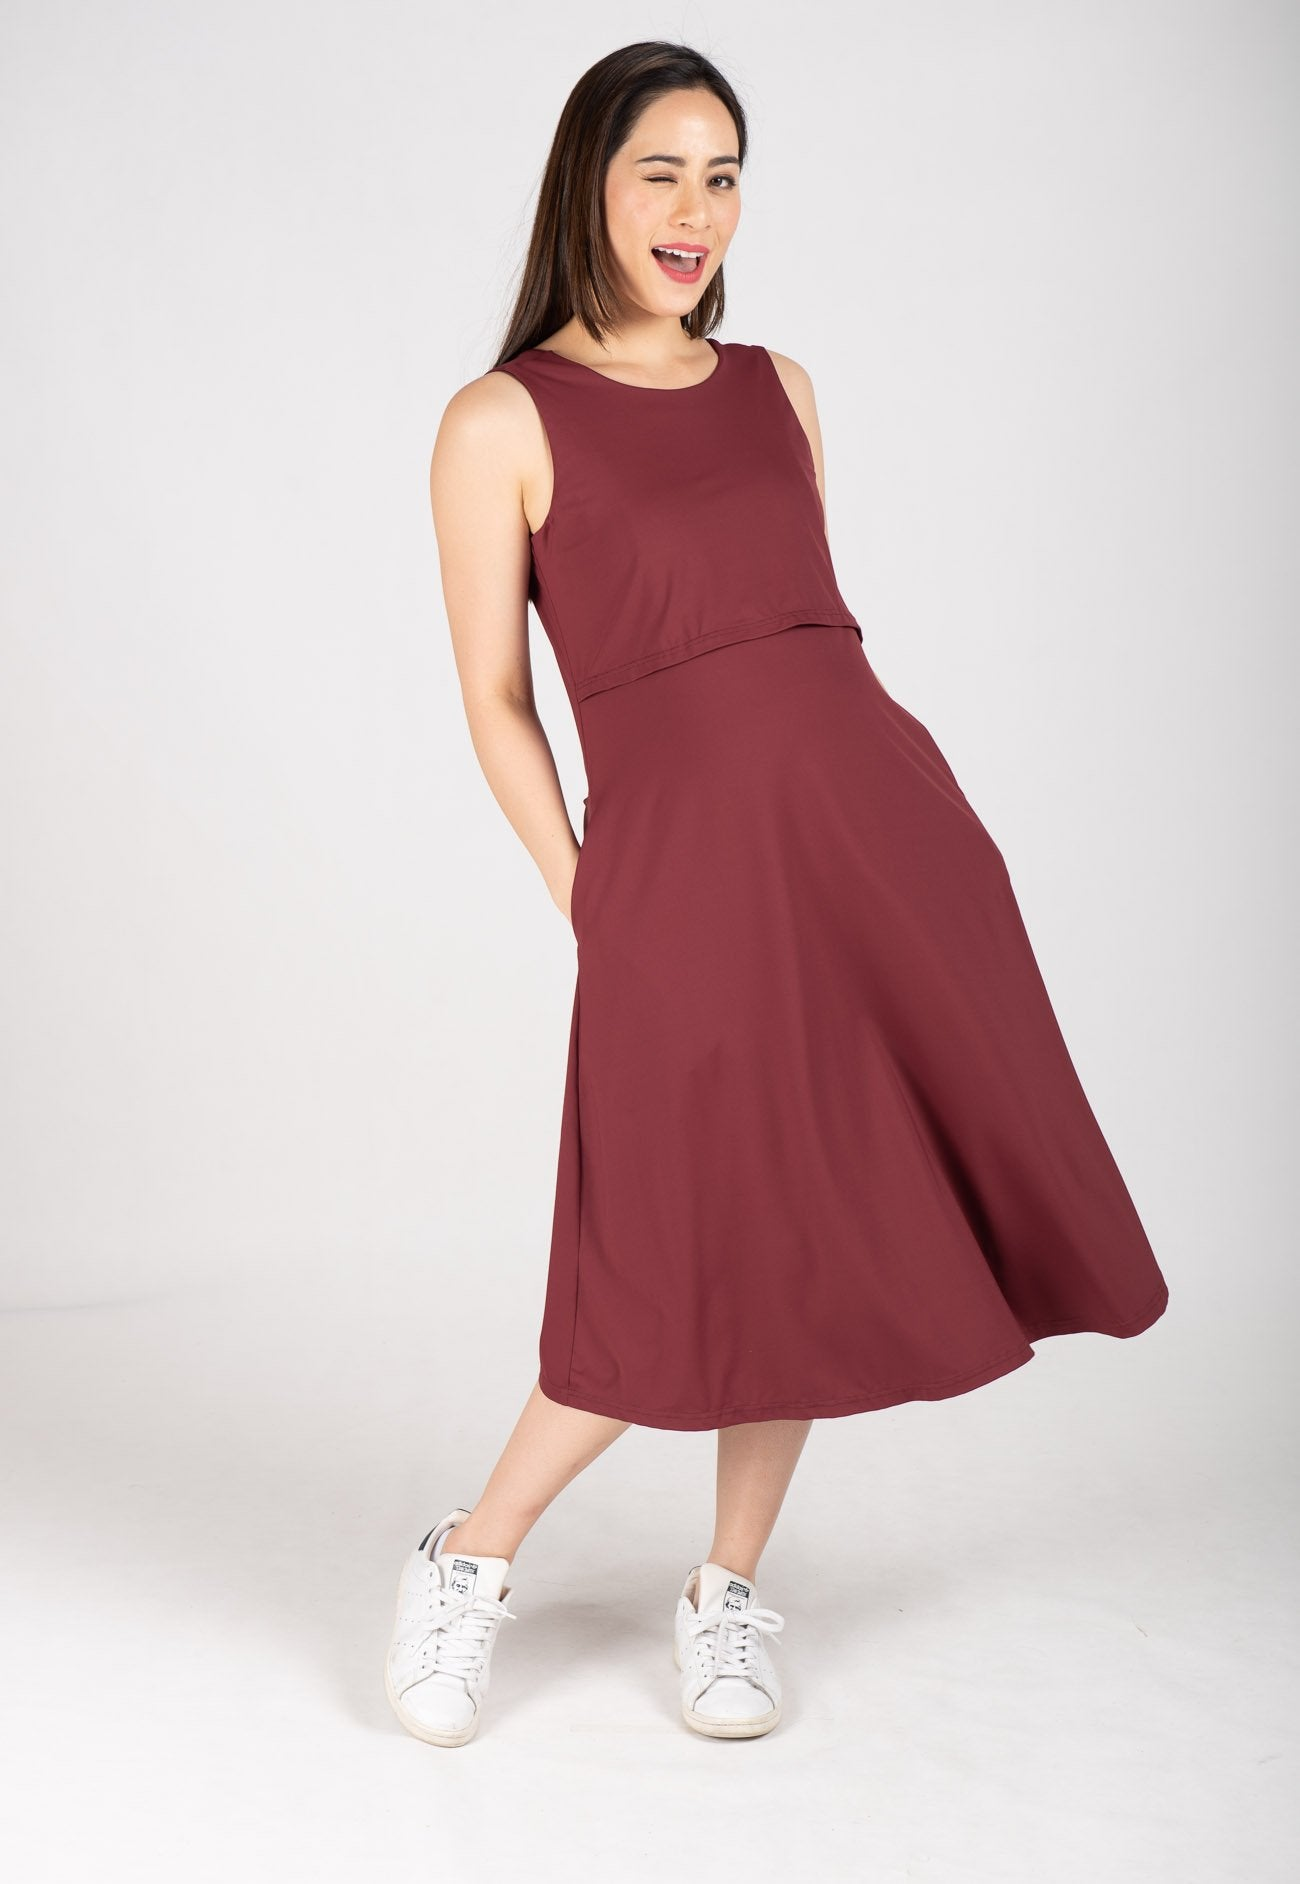 Mothercot Ally Midi Nursing Dress in Red  by JumpEatCry - Maternity and nursing wear